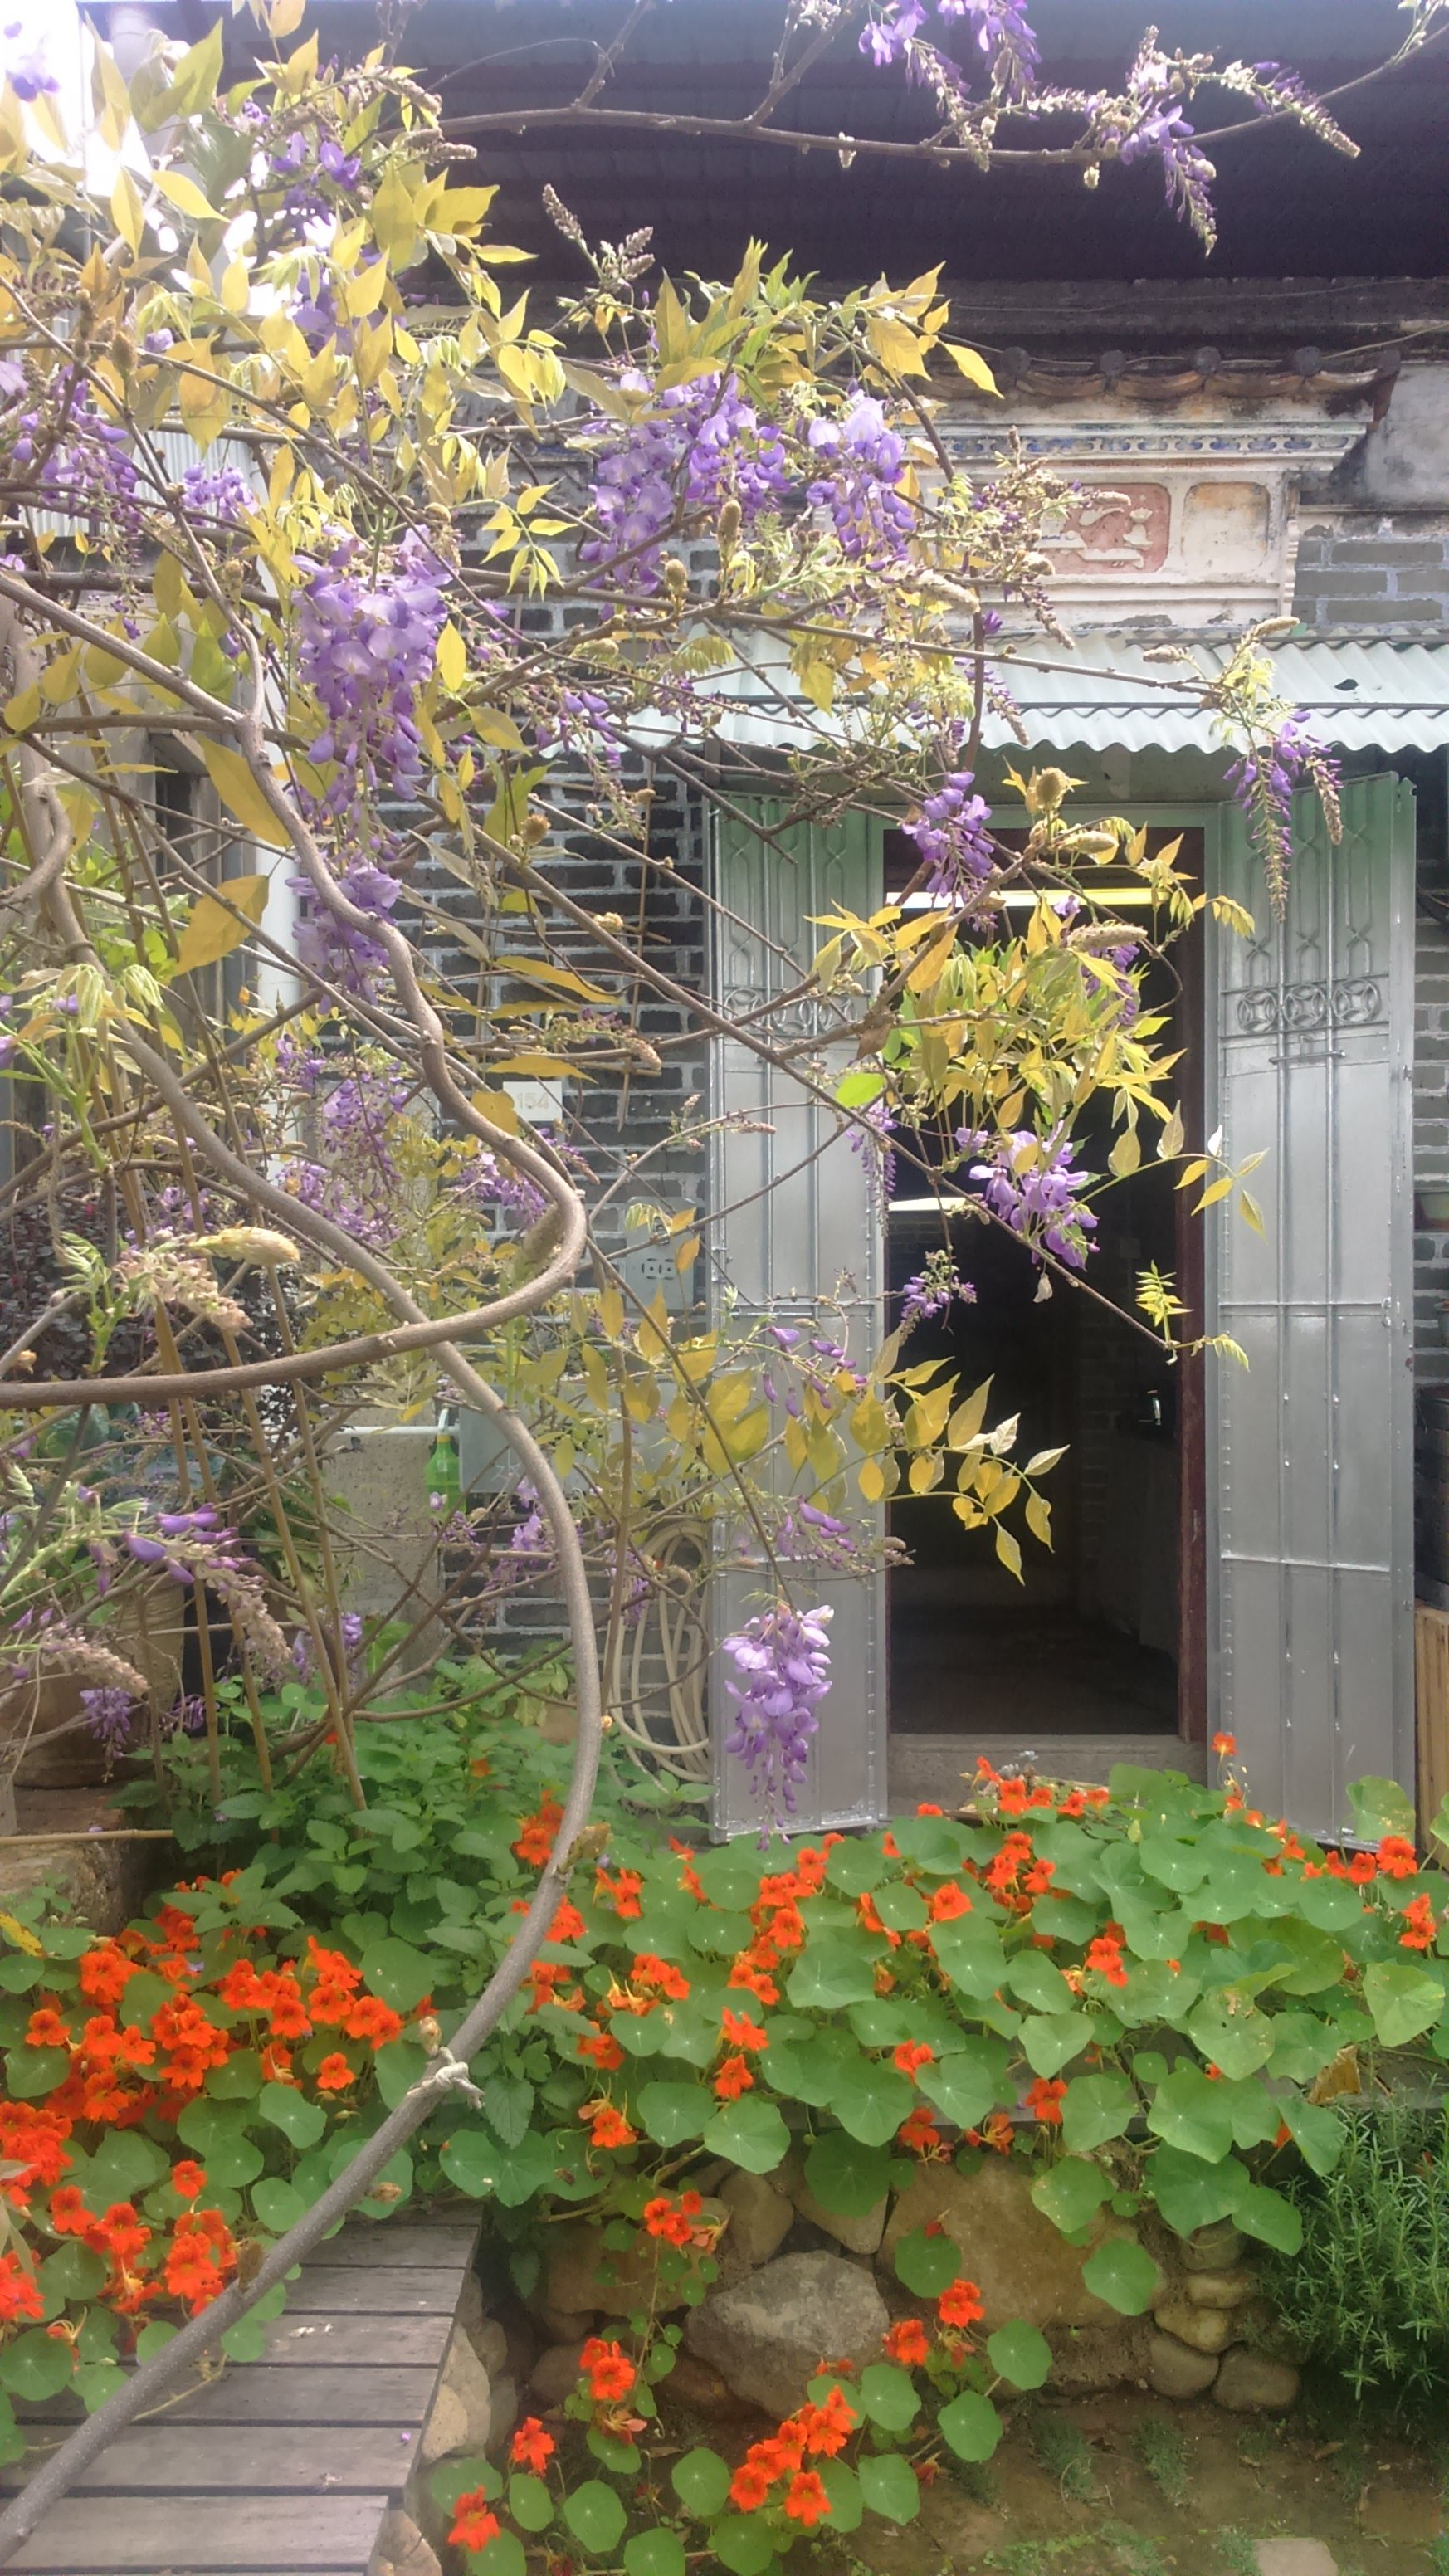 Chinese Wisteria is a fast growing climb